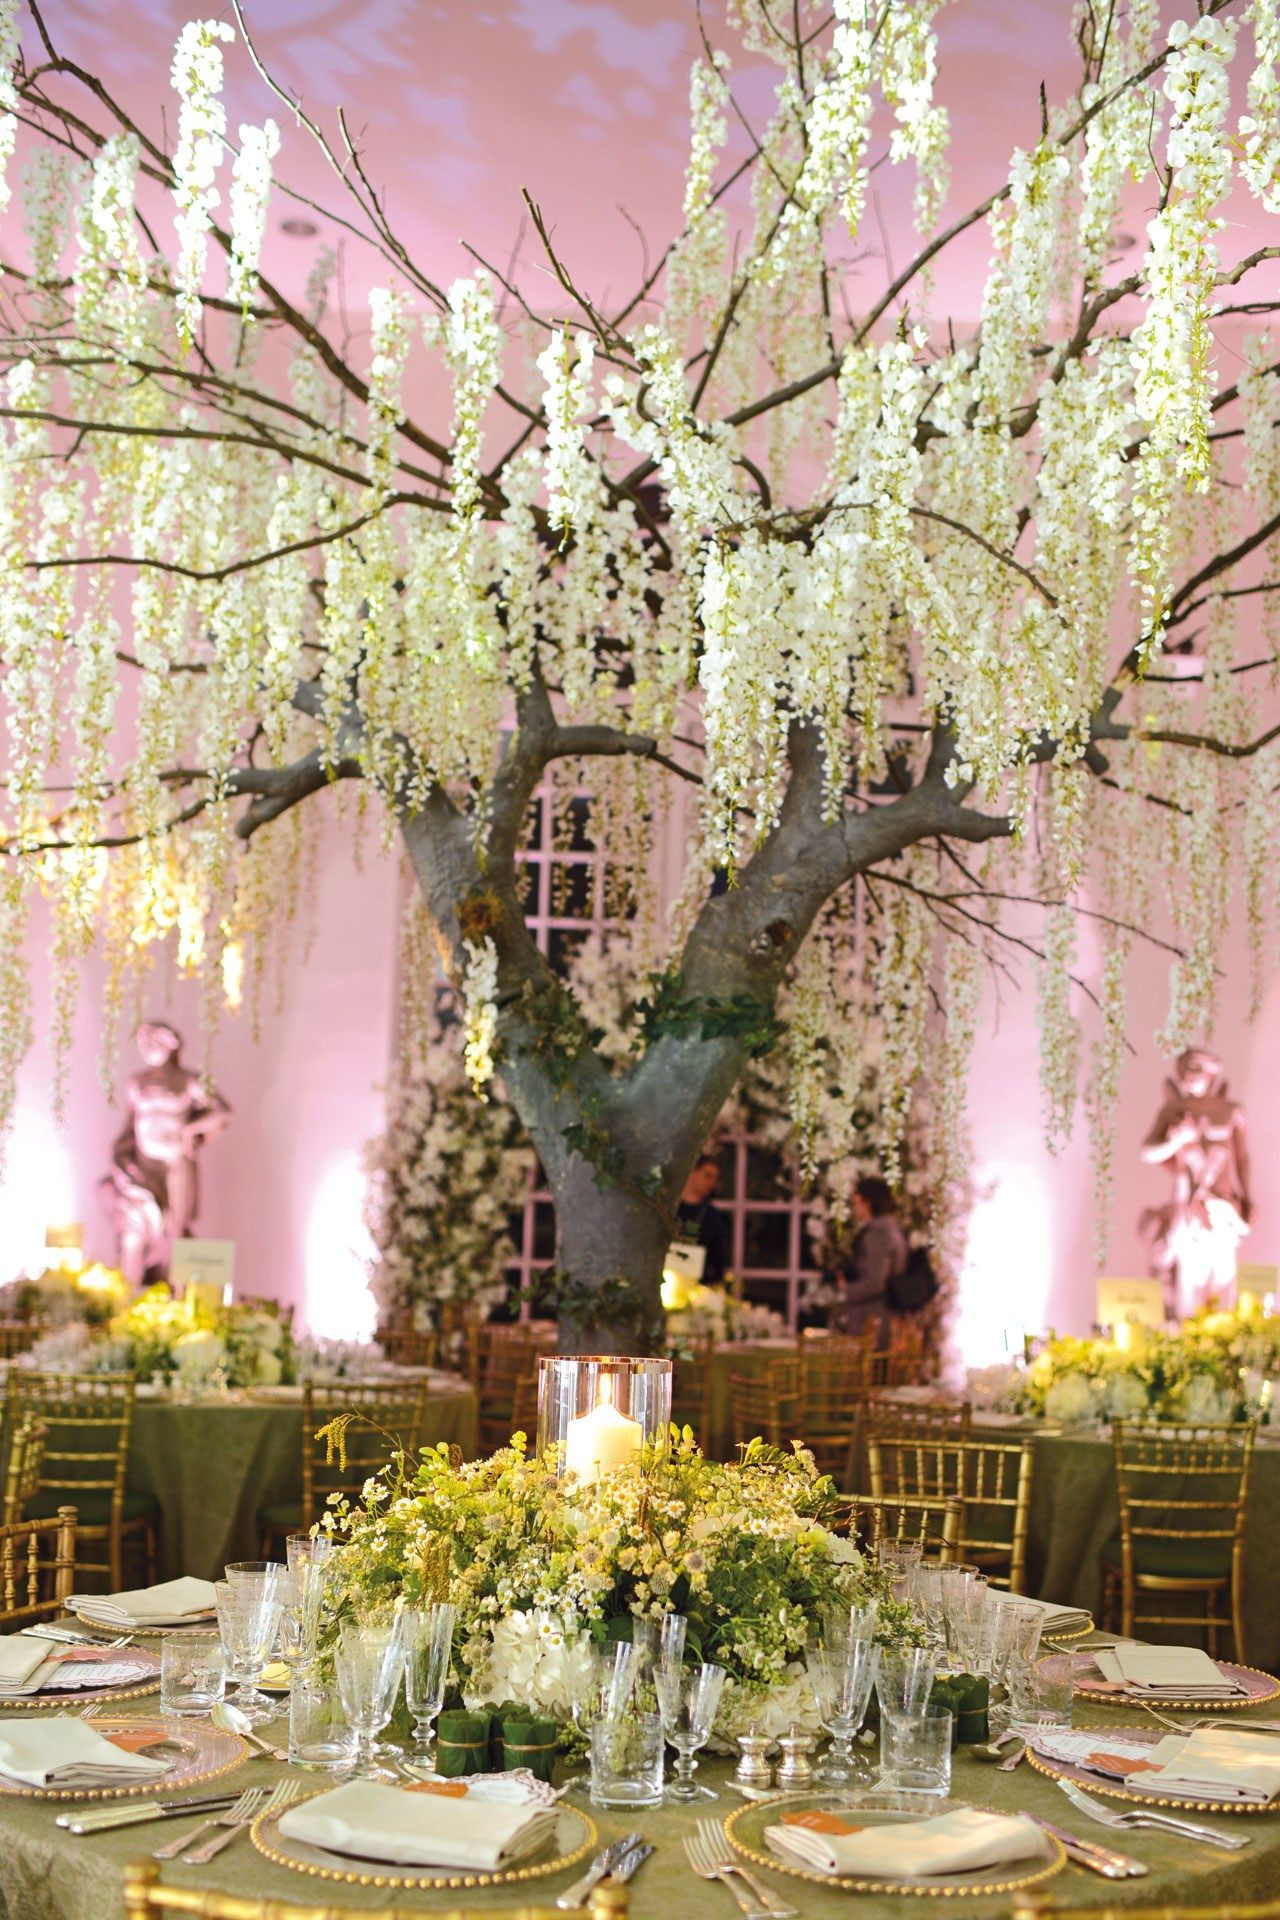 Enter the enchanted forest for Wedding reception location ideas